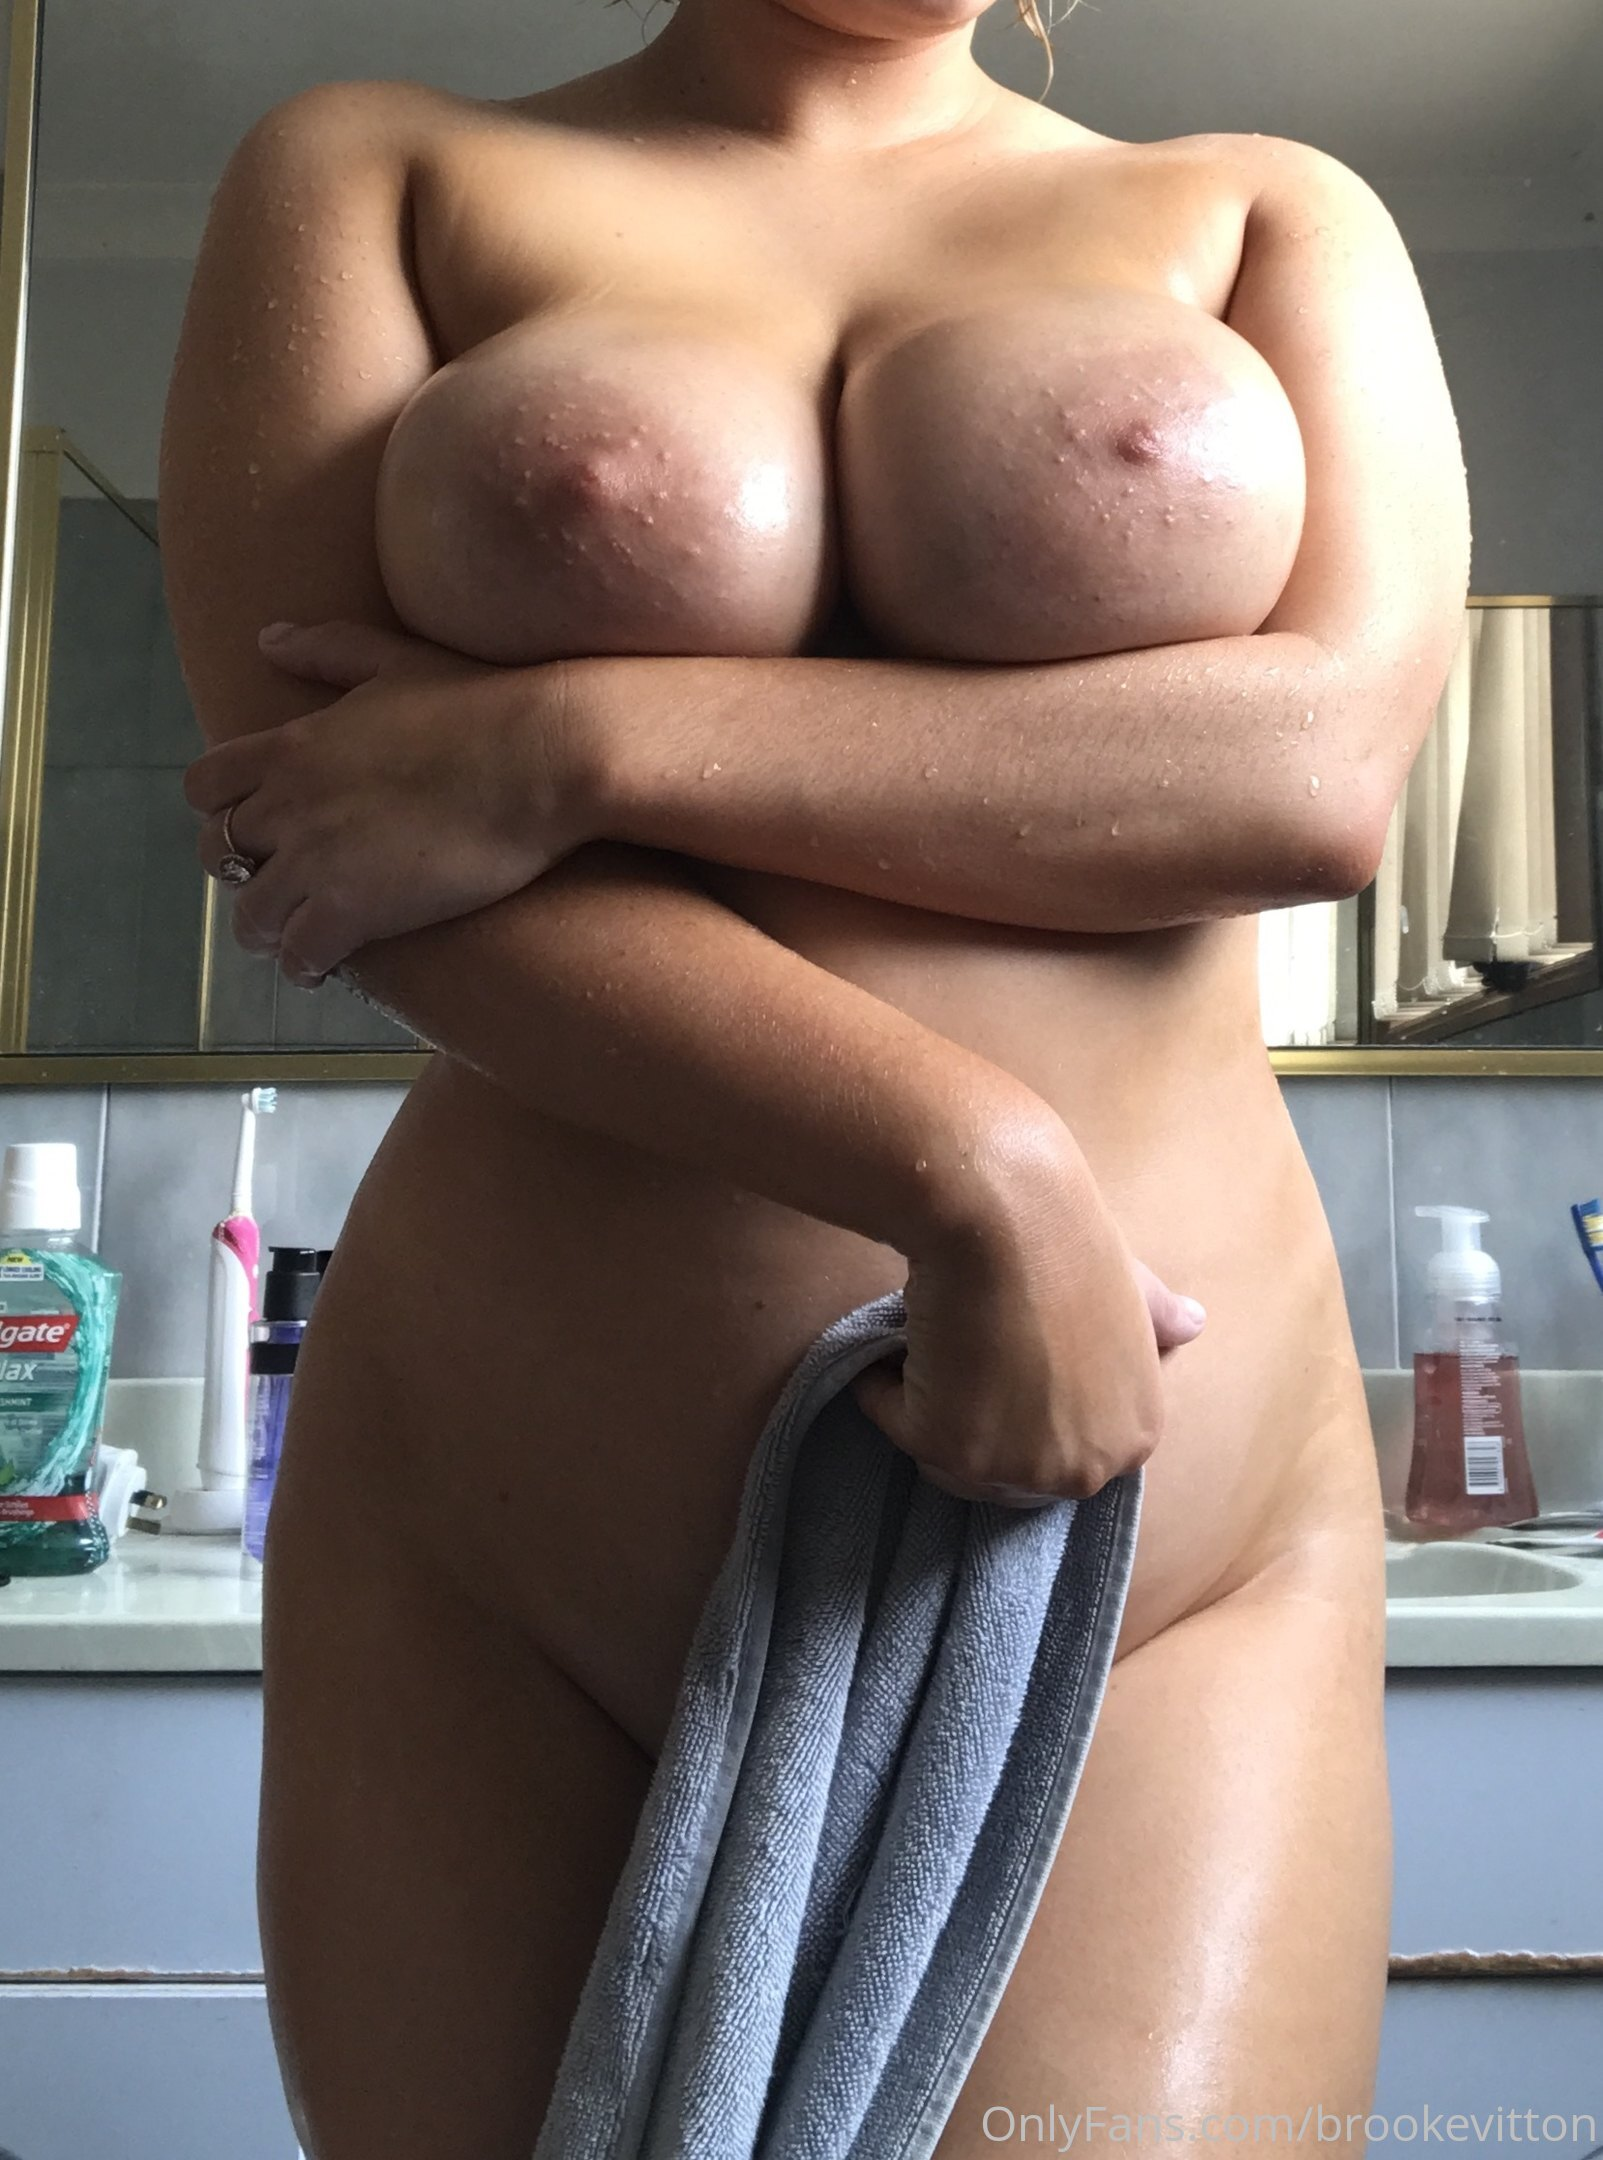 Avalon Hope Nude Onlyfans Collection Leak! Onlyfans @avalonhopeofficial (brookevitton) 0012